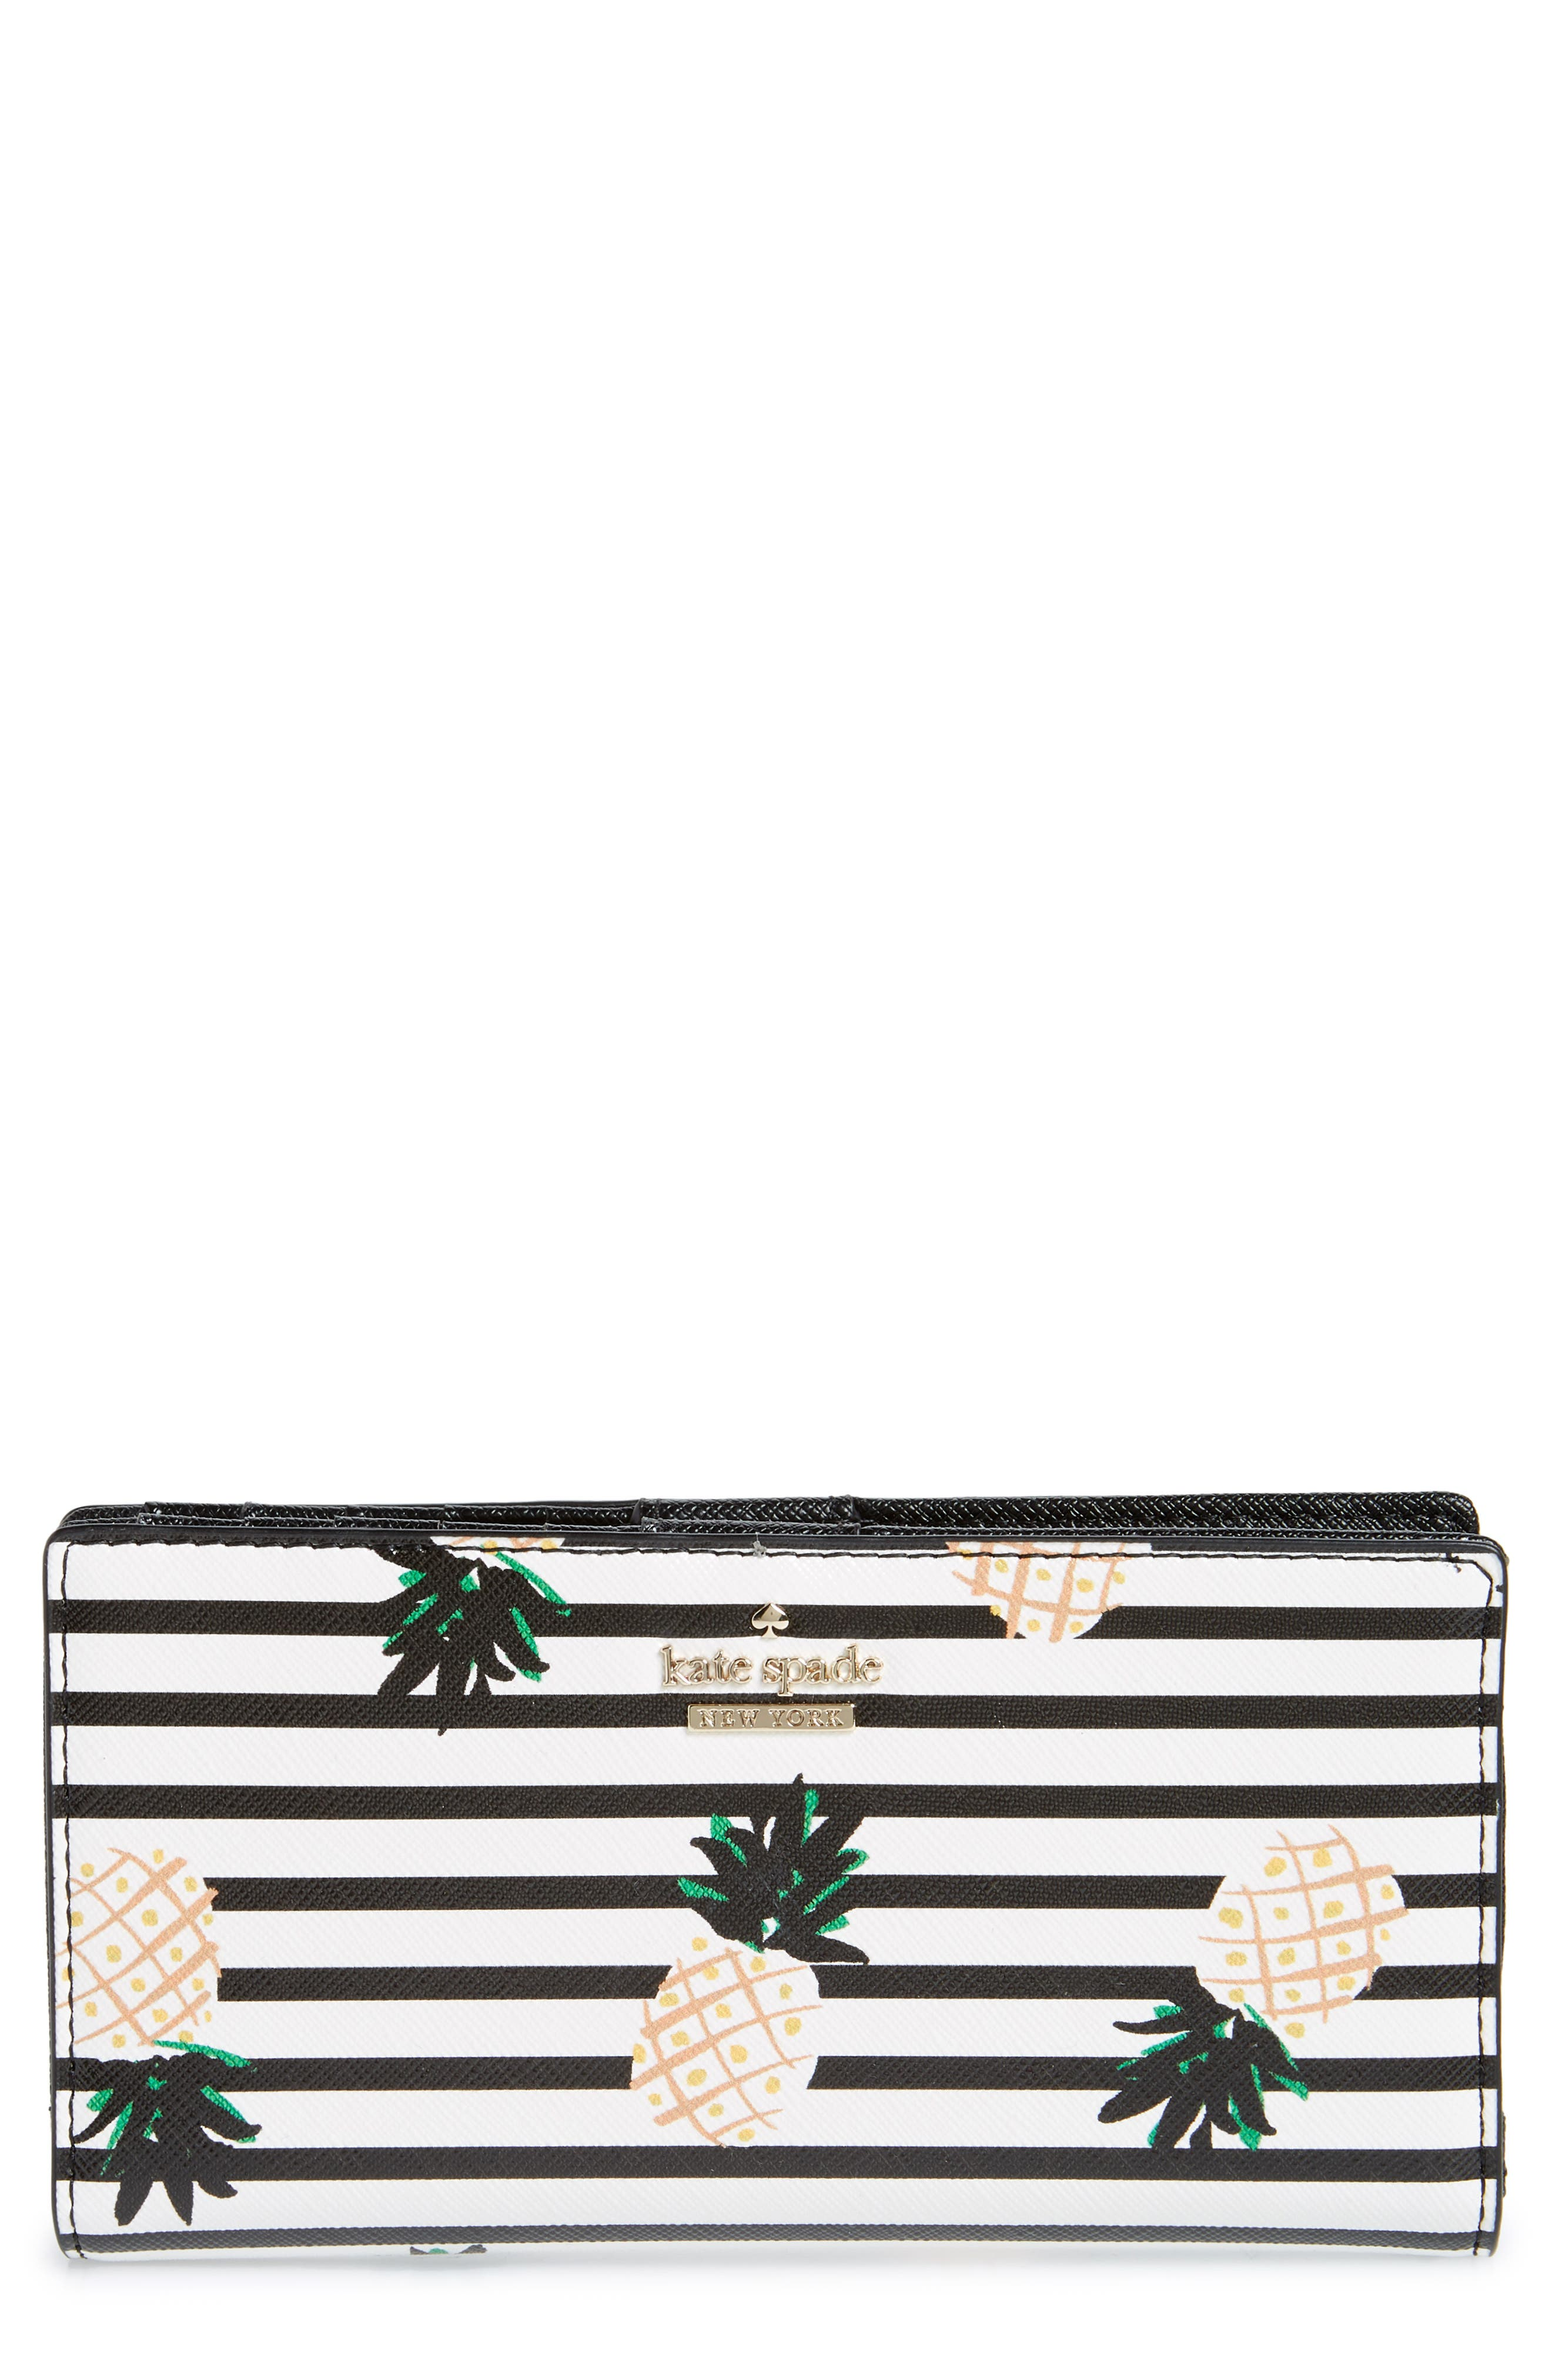 KATE SPADE NEW YORK,                             cameron street - stacy pineapples glazed canvas wallet,                             Main thumbnail 1, color,                             700